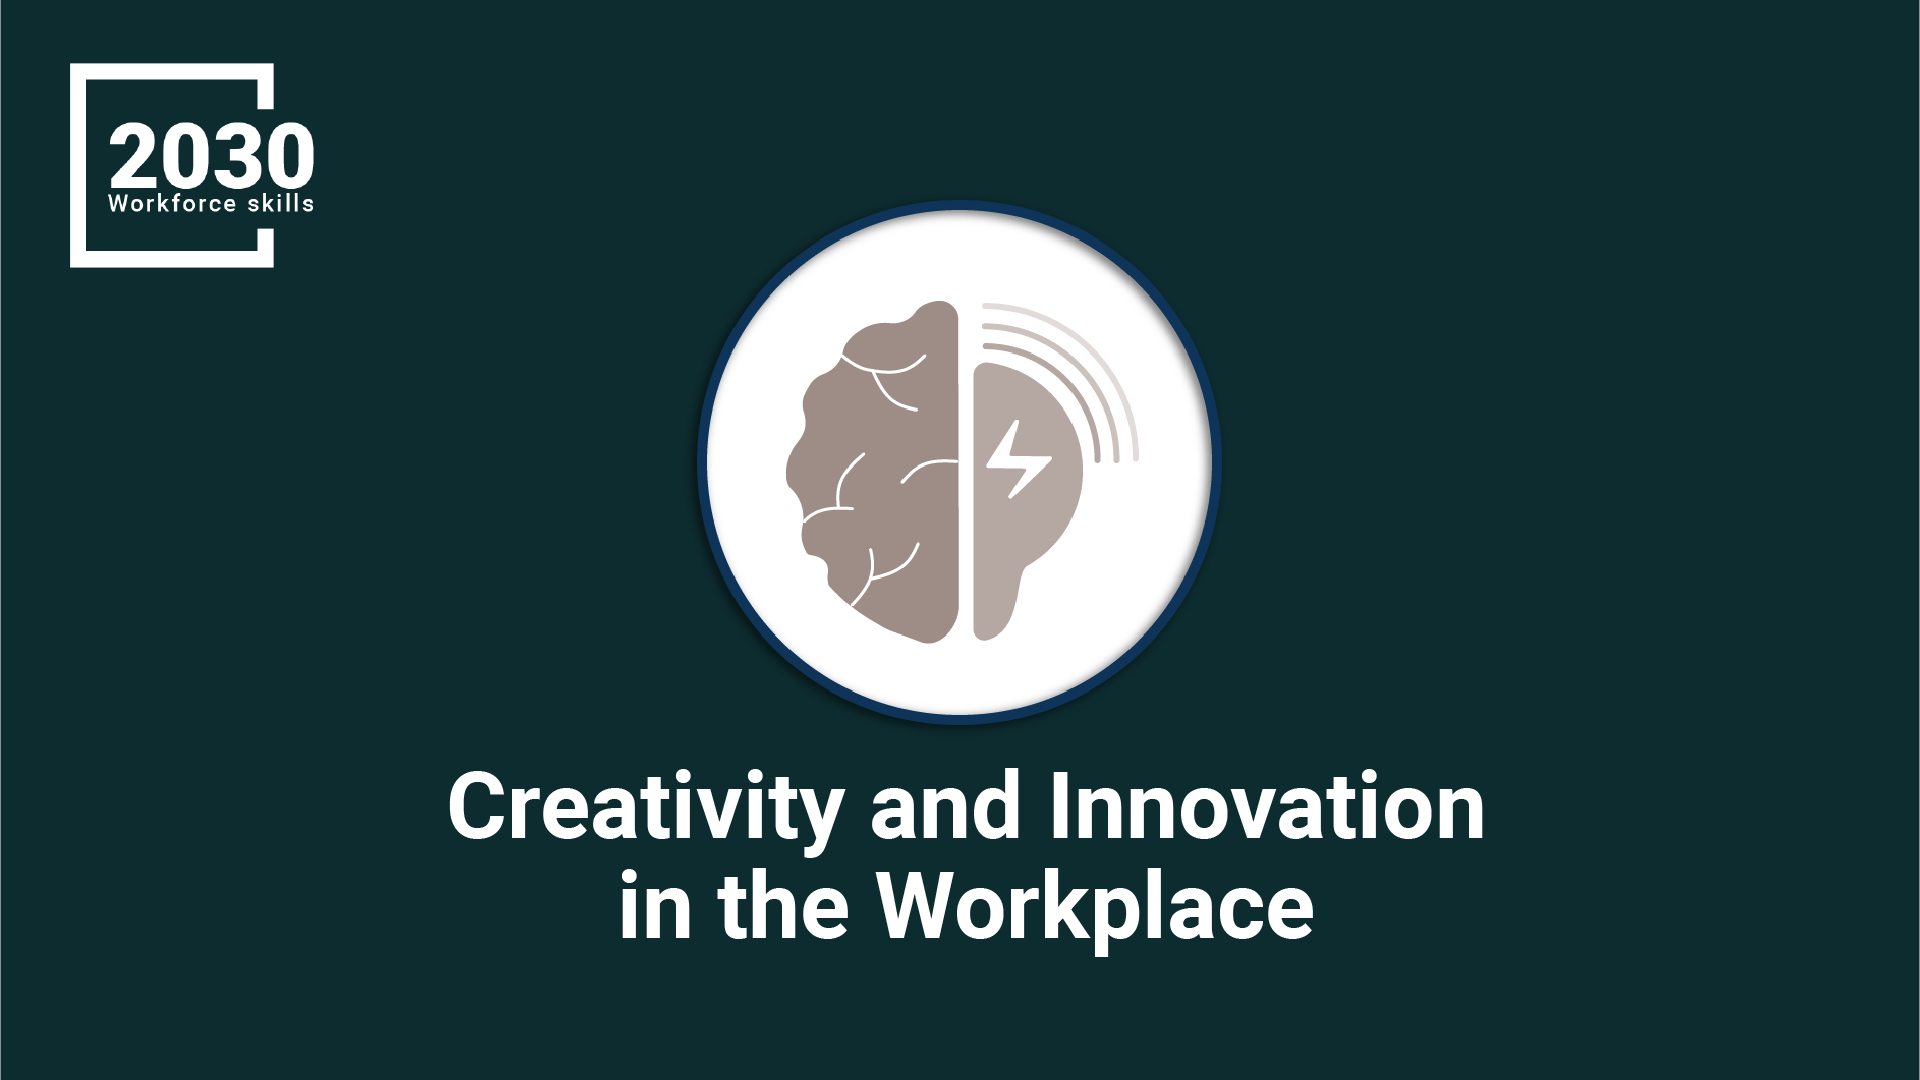 https://omnistackconnect.omnihrc.com/product/creativity-and-innovation-in-the-workplace